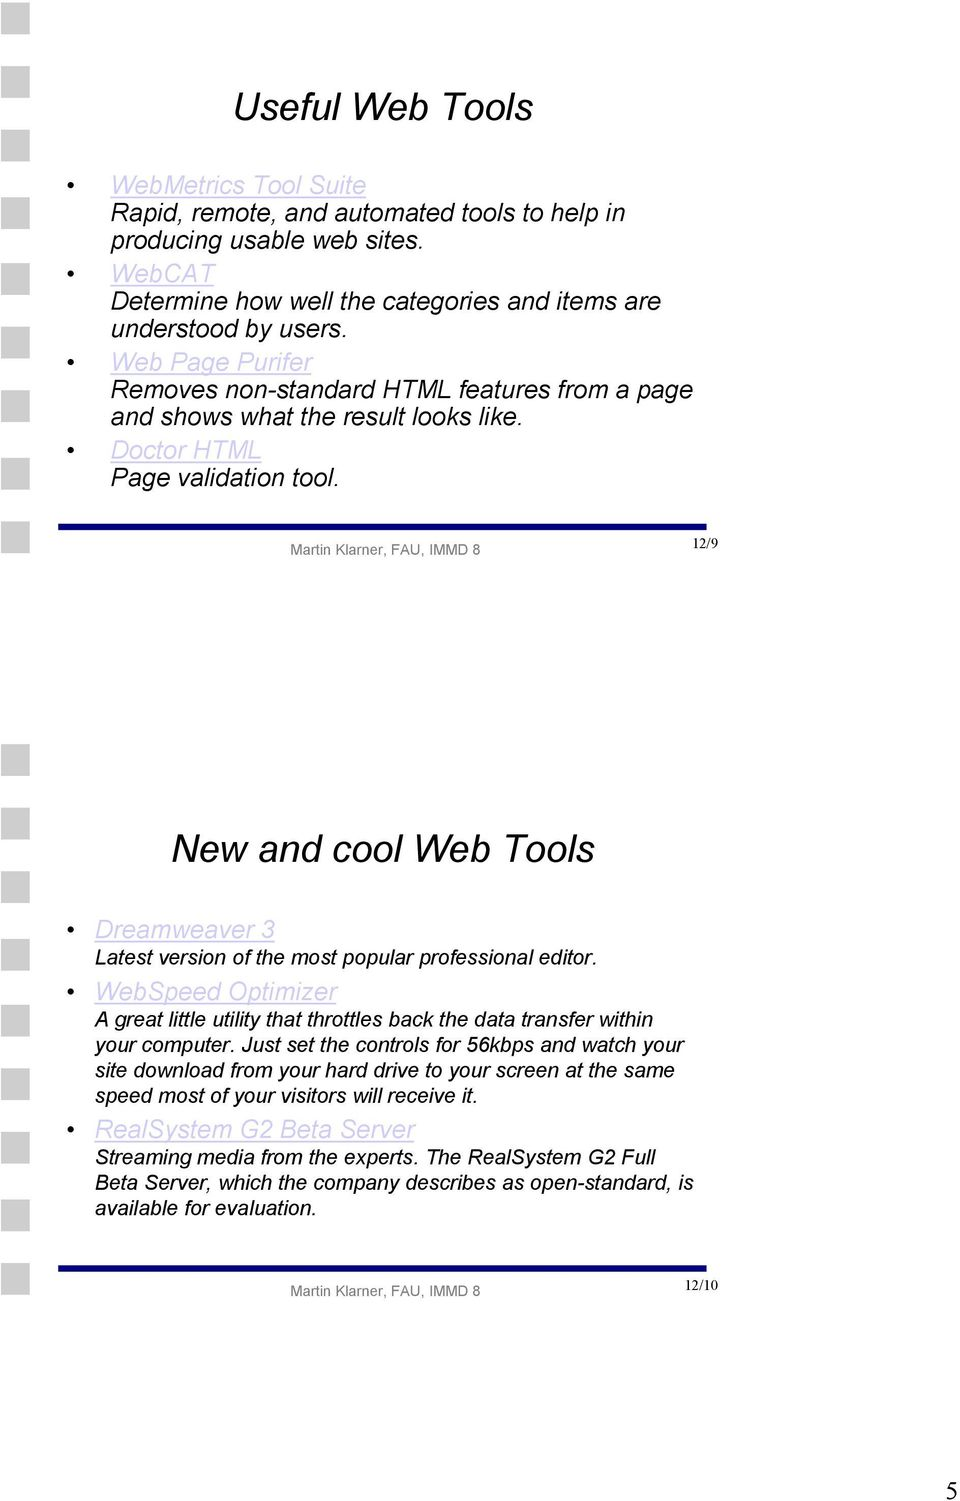 12/9 New and cool Web Tools Dreamweaver 3 Latest version of the most popular professional editor. WebSpeed Optimizer A great little utility that throttles back the data transfer within your computer.